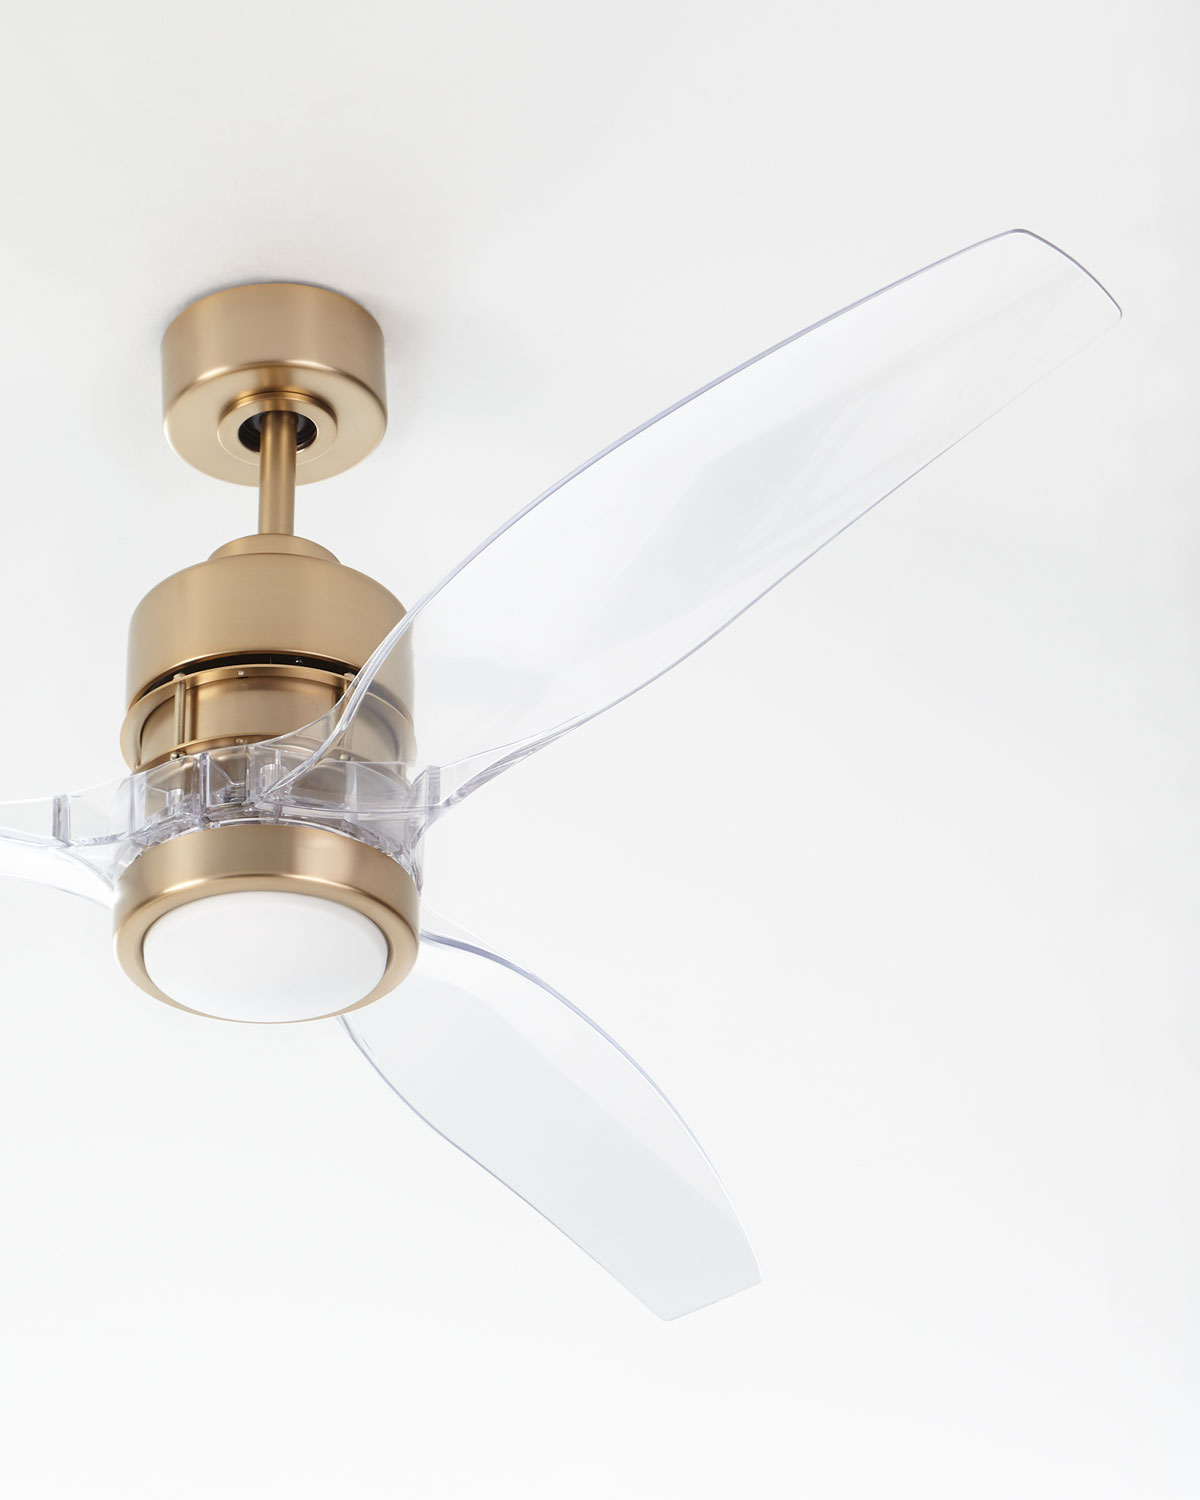 Such a pretty ceiling fan with a satin brass base and acrylic fan blades!